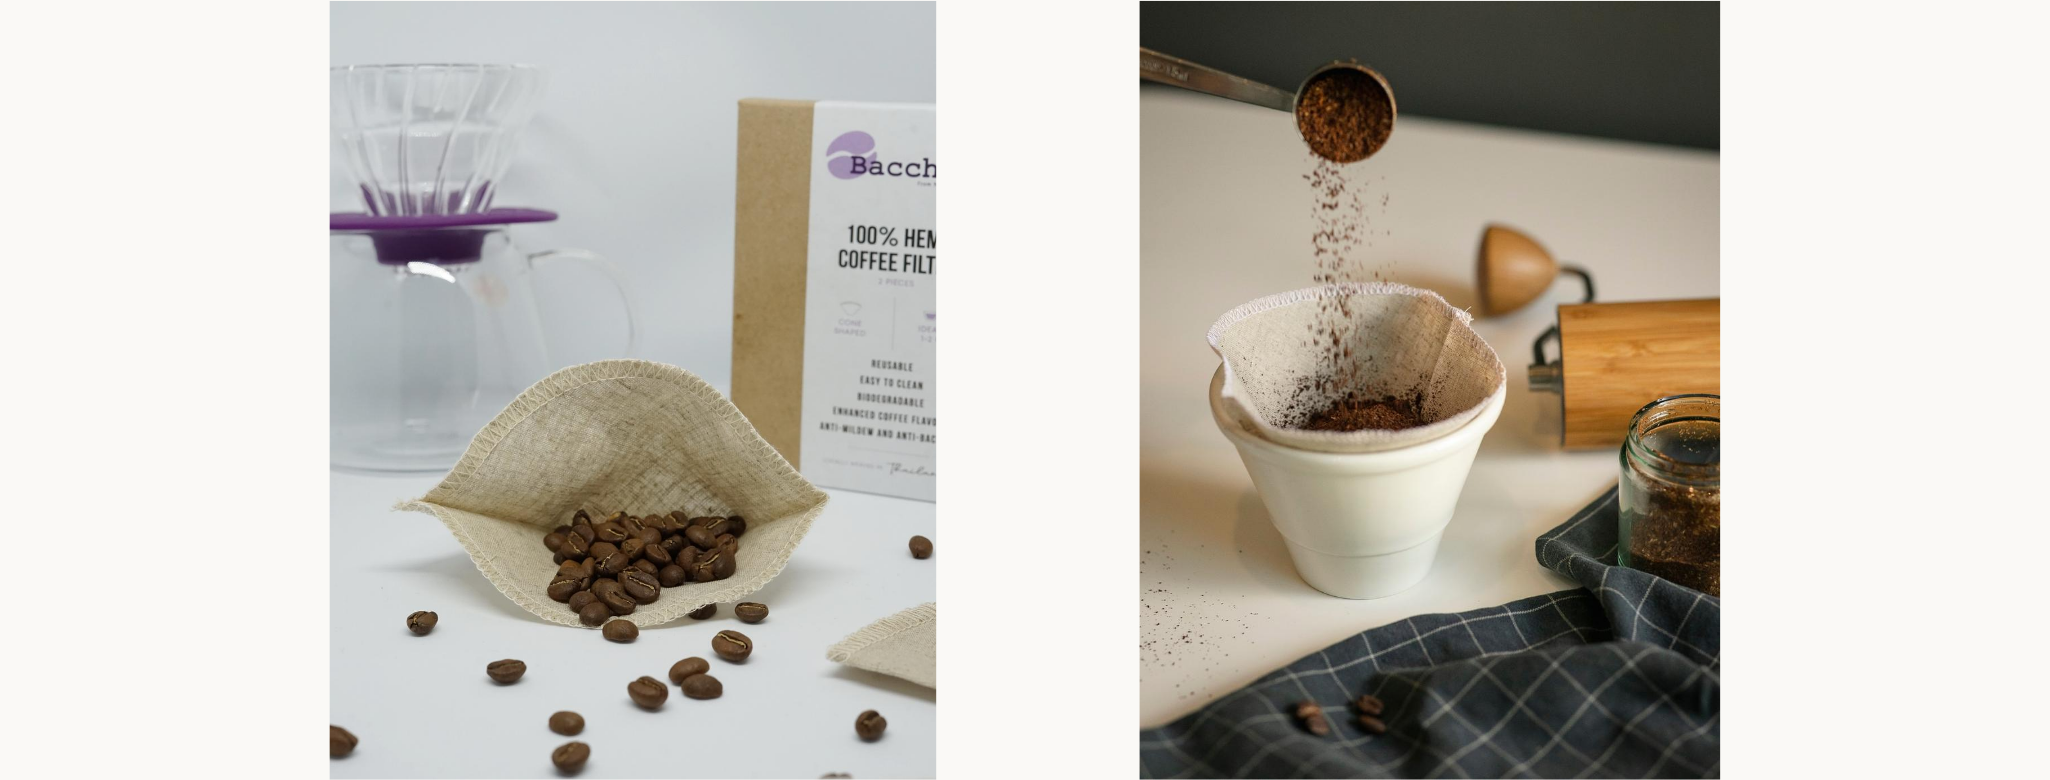 Bacchus 100% Hemp coffee filter suitable for kalita 1010 and Hario V60 01. Hemp coffee filter is a durable reusable filter that will last over 6 months with a proper care. The material is biodegradable and anti-mildew